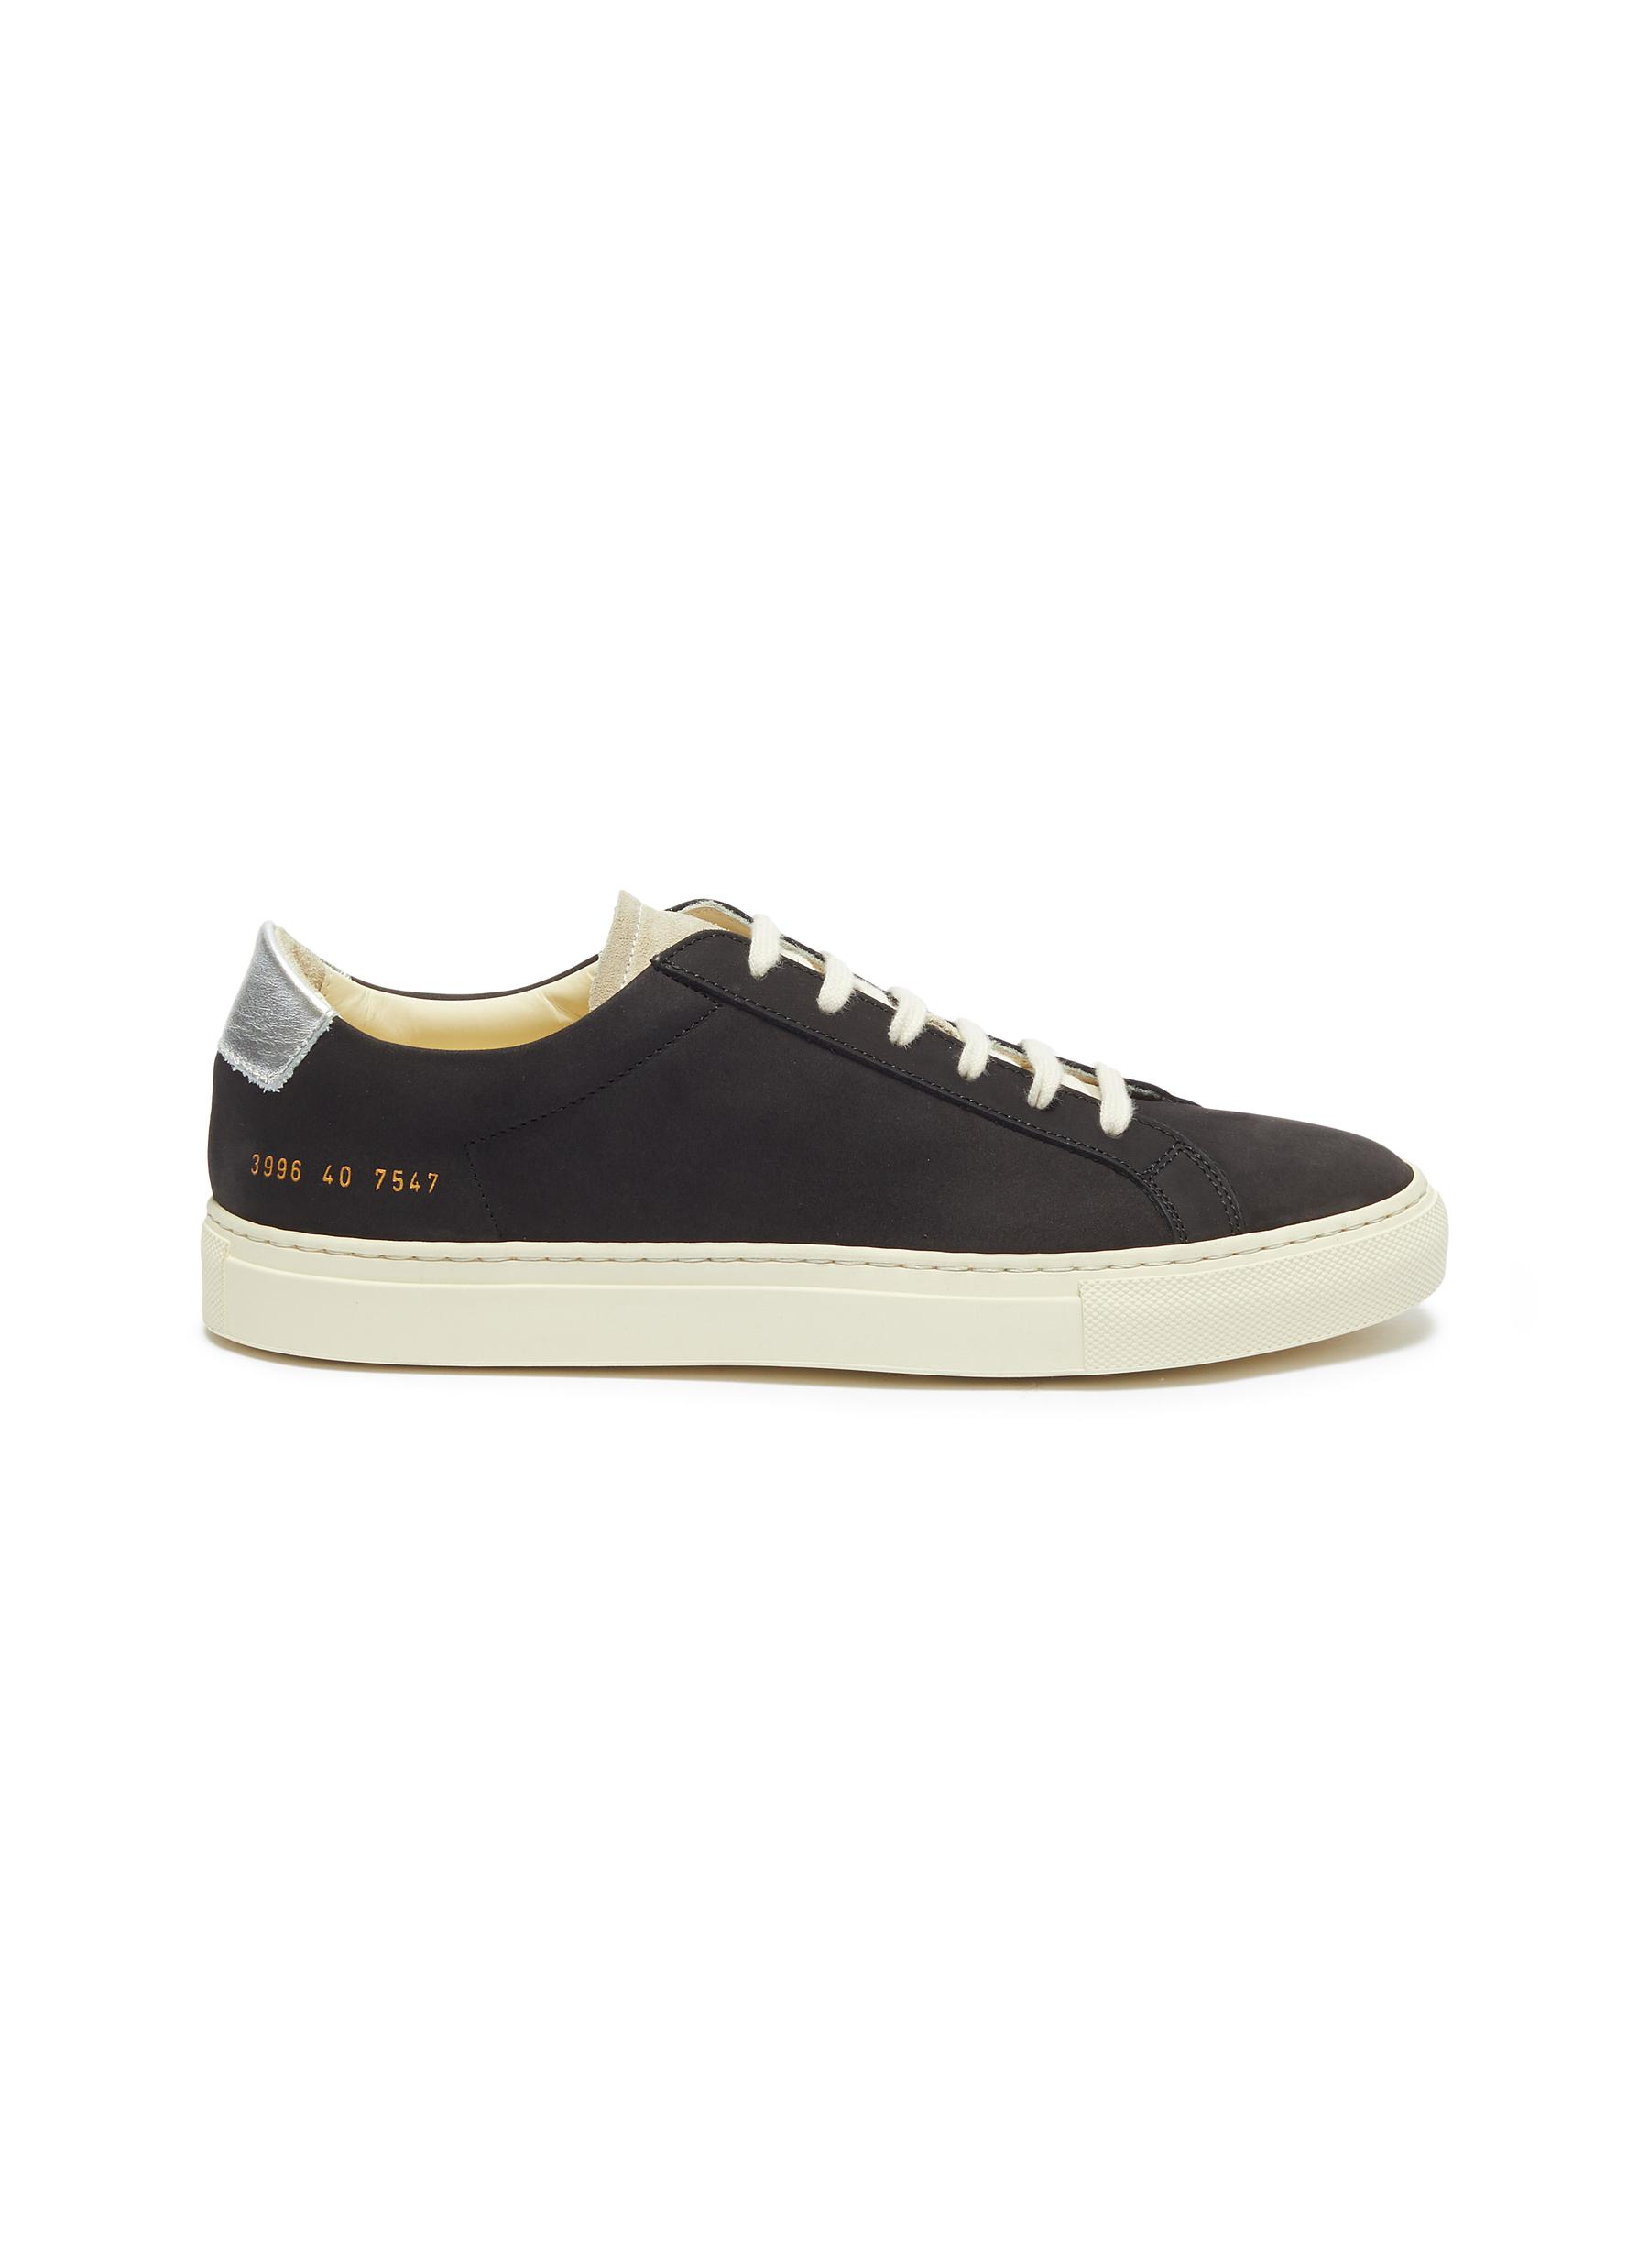 Retro Low leather sneakers by Common Projects